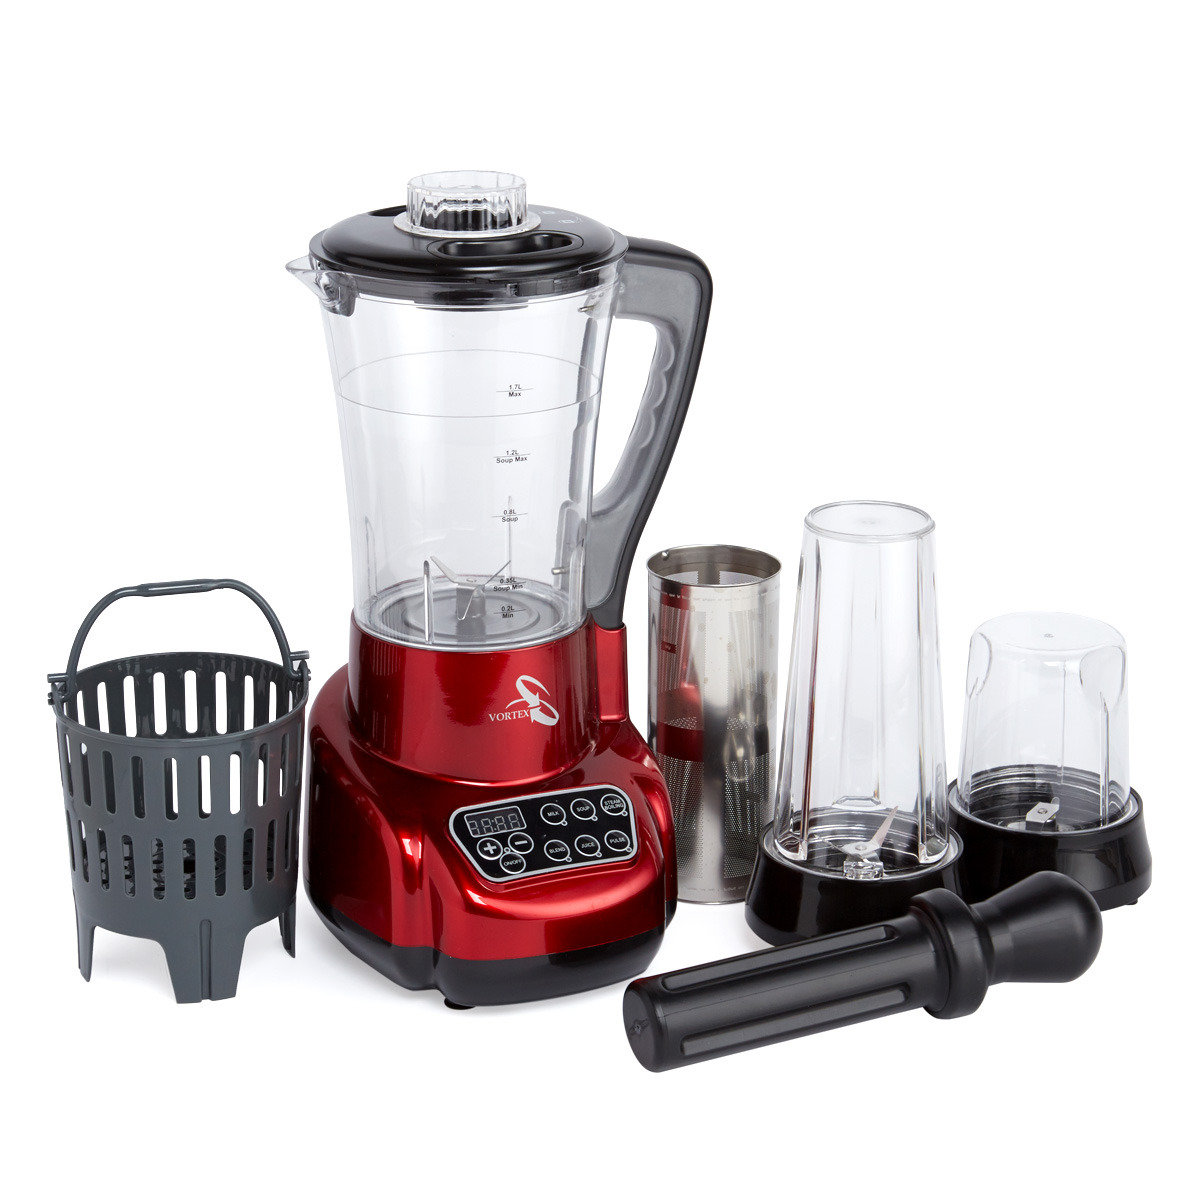 VORTEX VB-7801 Soup Maker & Food Processor